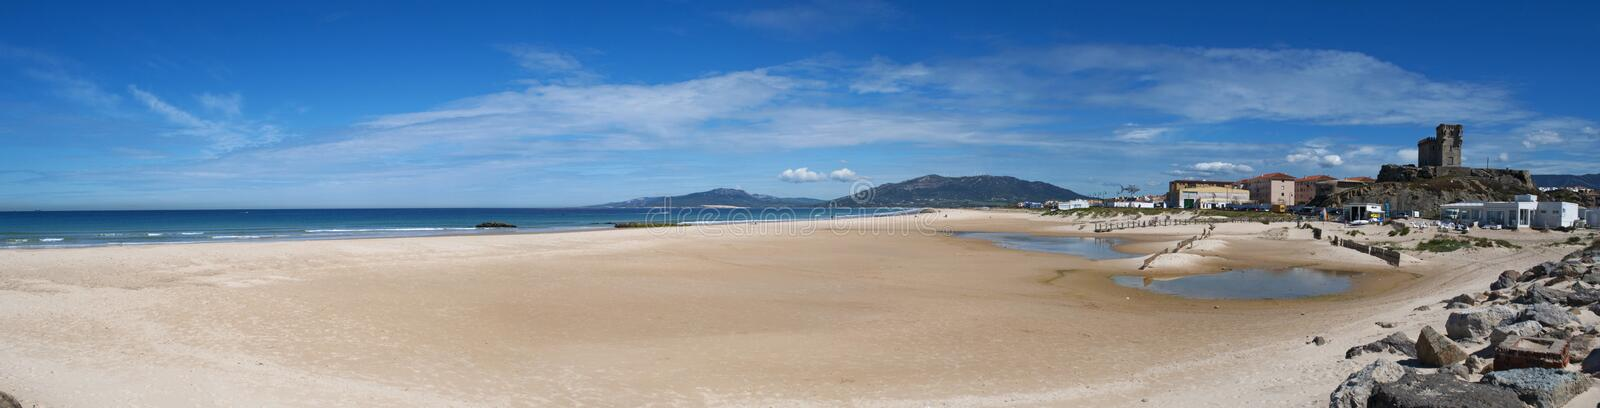 Tarifa, Spain, Andalusia, Iberian Peninsula, Europe, beach, nature, desert, landscape. Spain, 23/04/2016: view of Playa de los Lances, the biggest beach of stock image